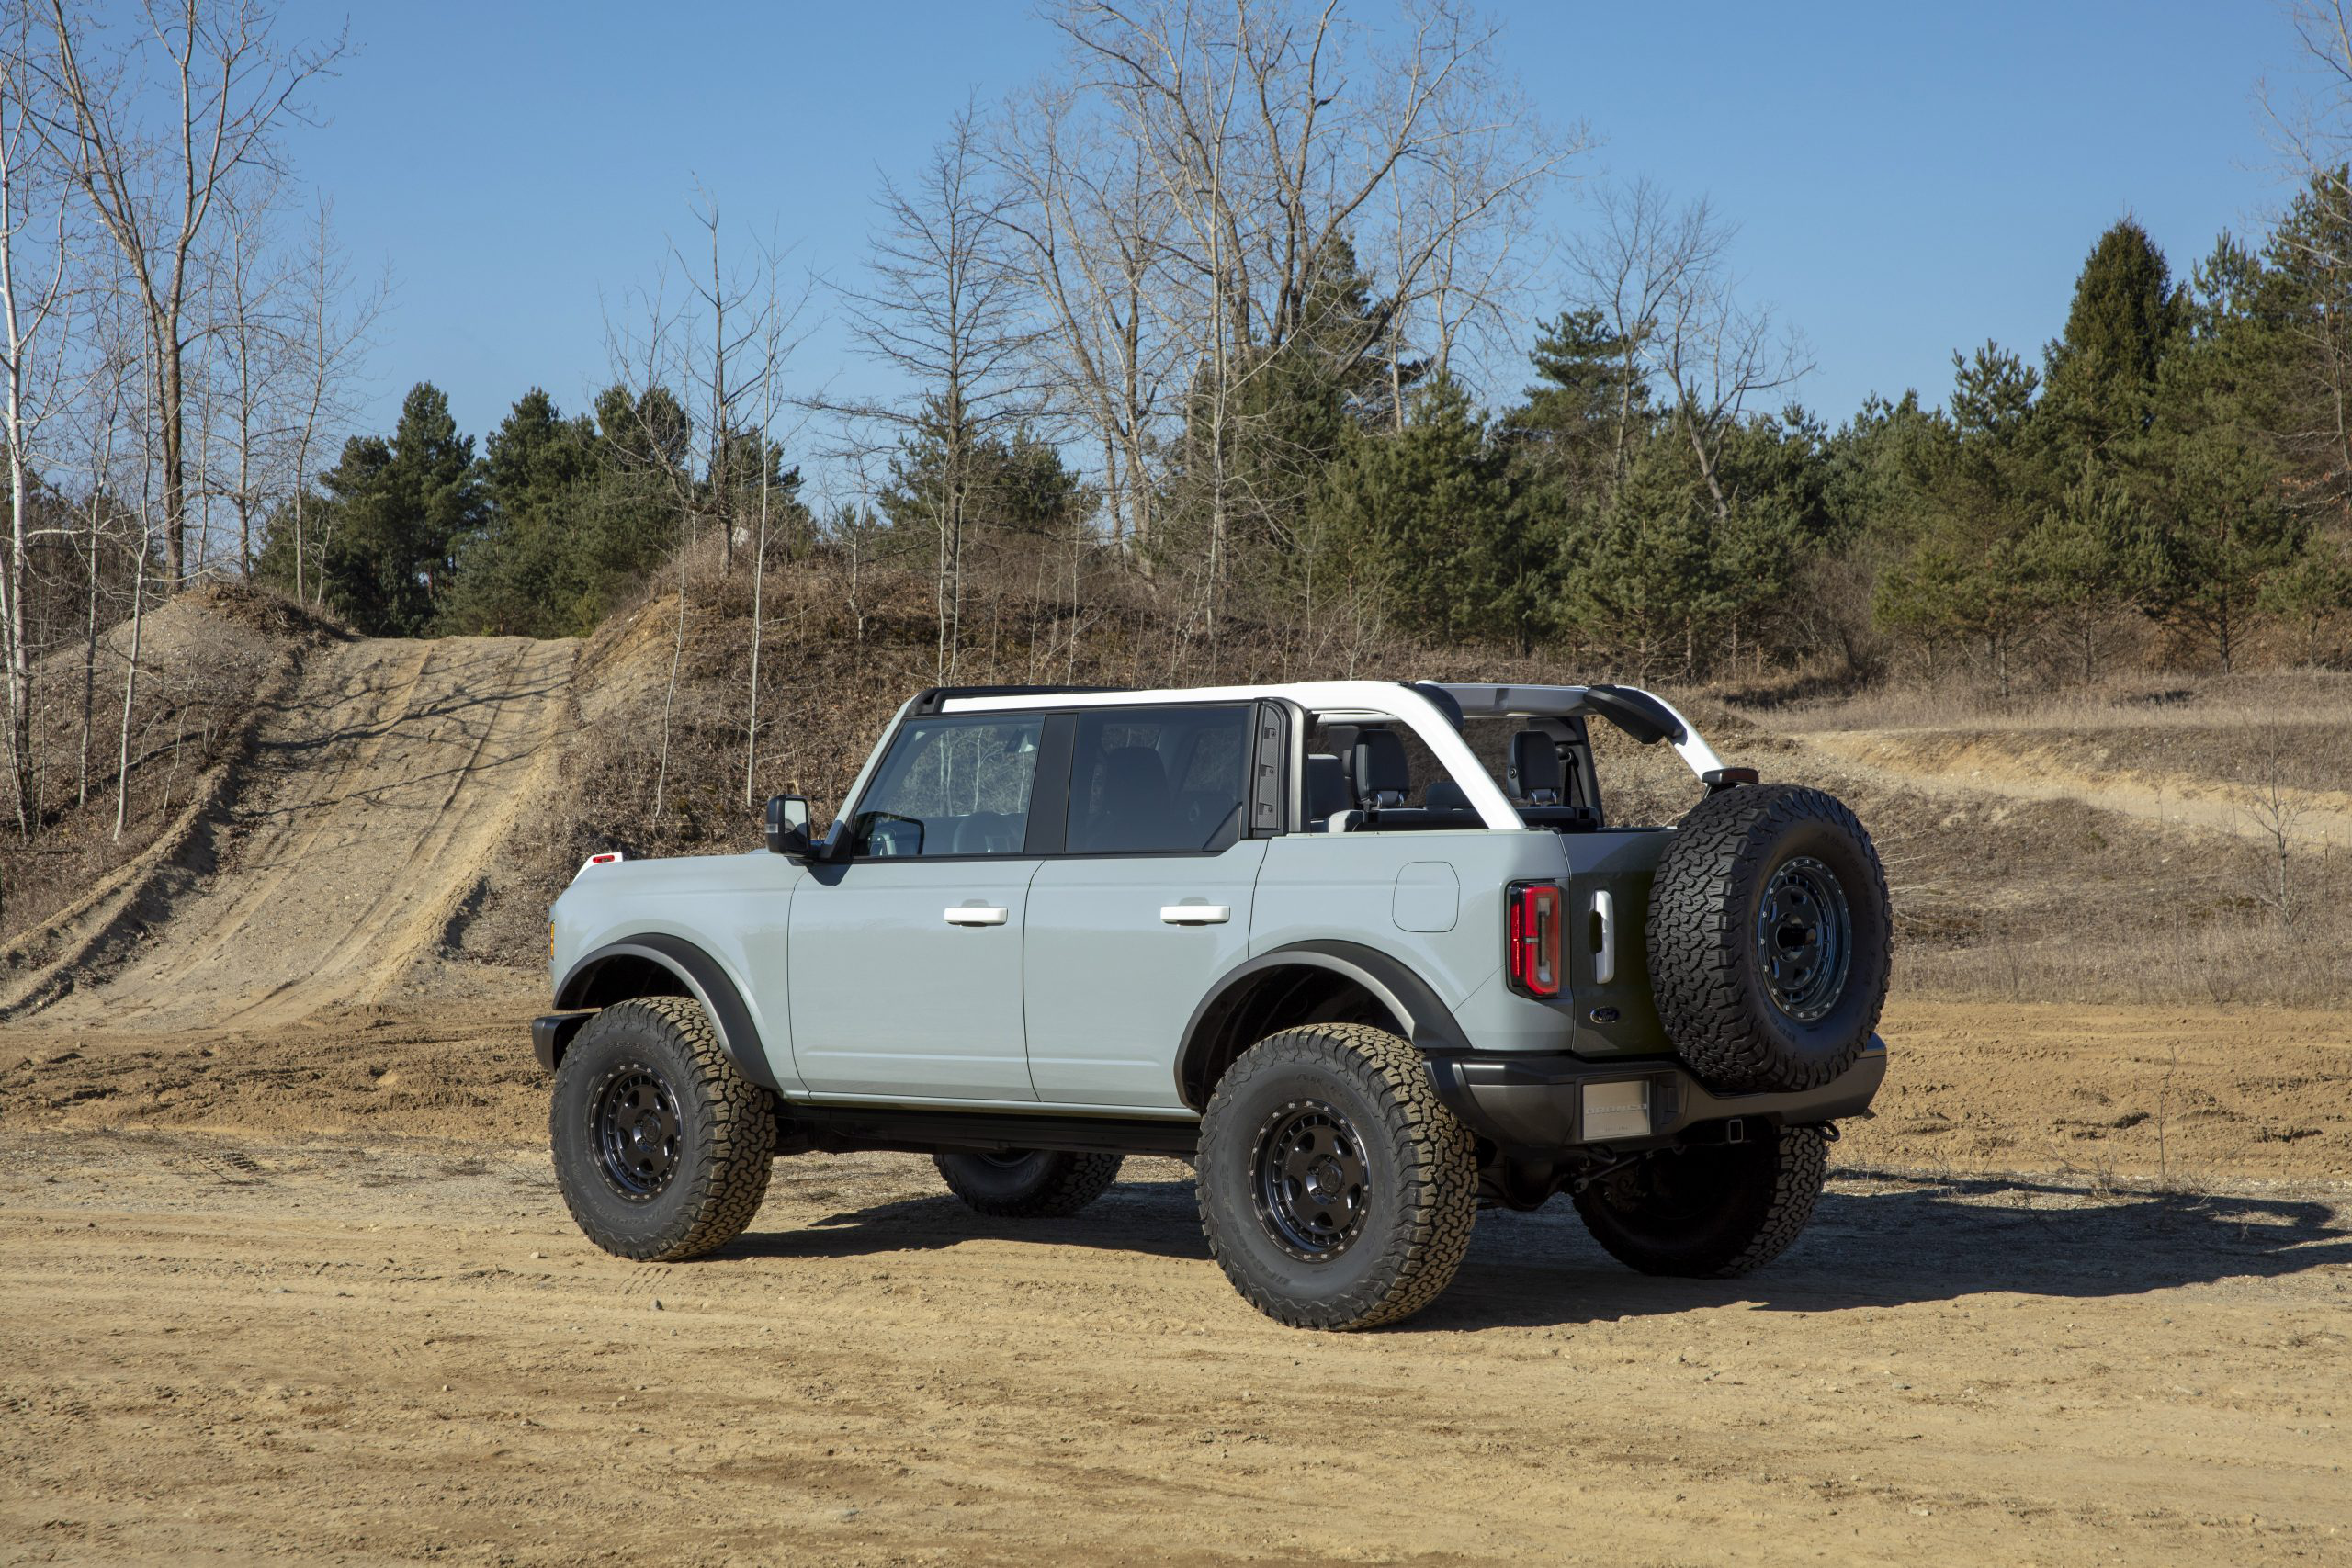 video will the 2021 ford bronco make a good construction